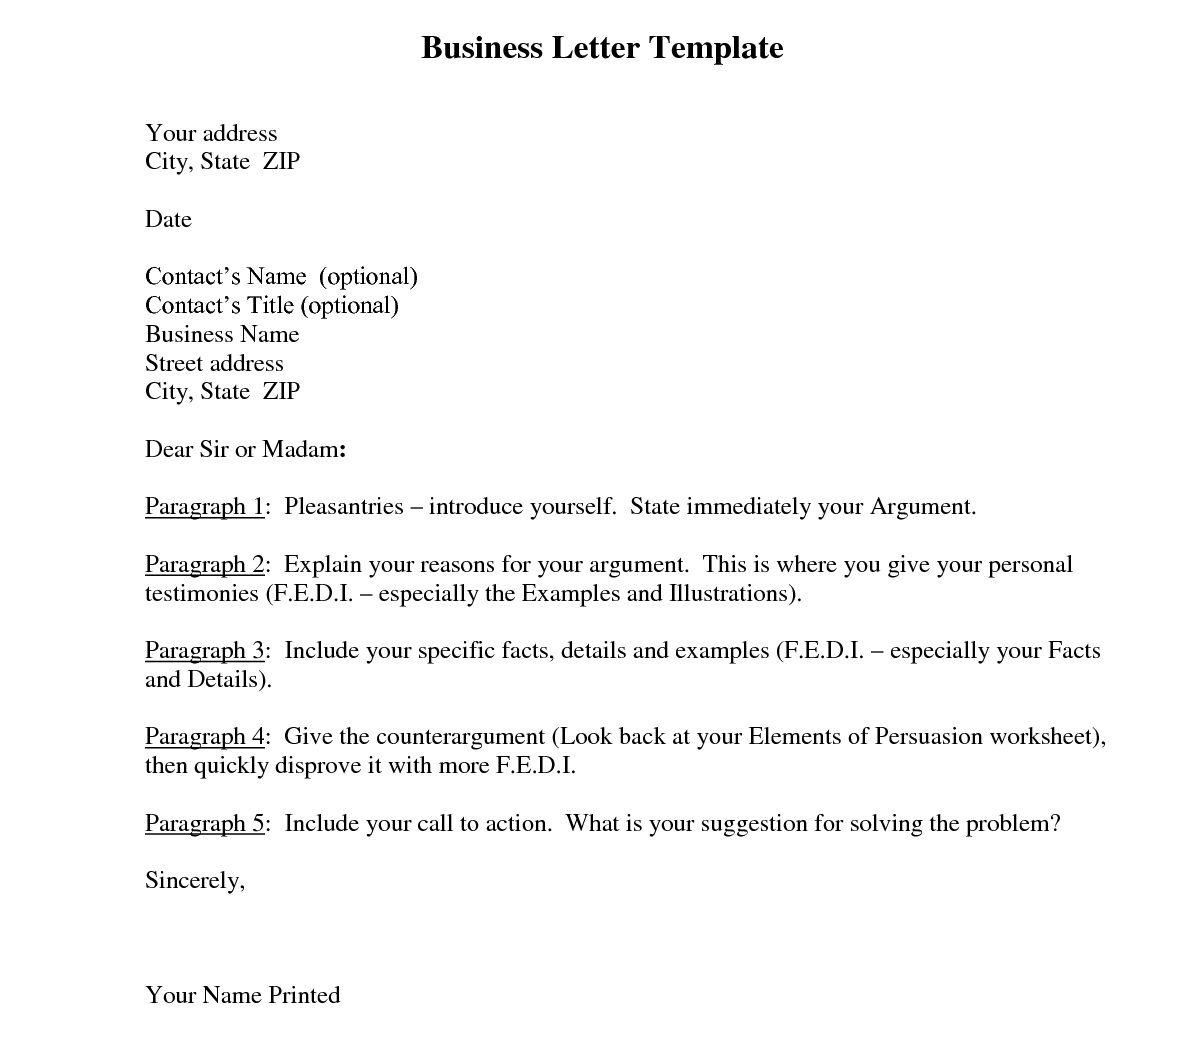 006 Beautiful Busines Letter Template Word High Def  Cover FreeFull